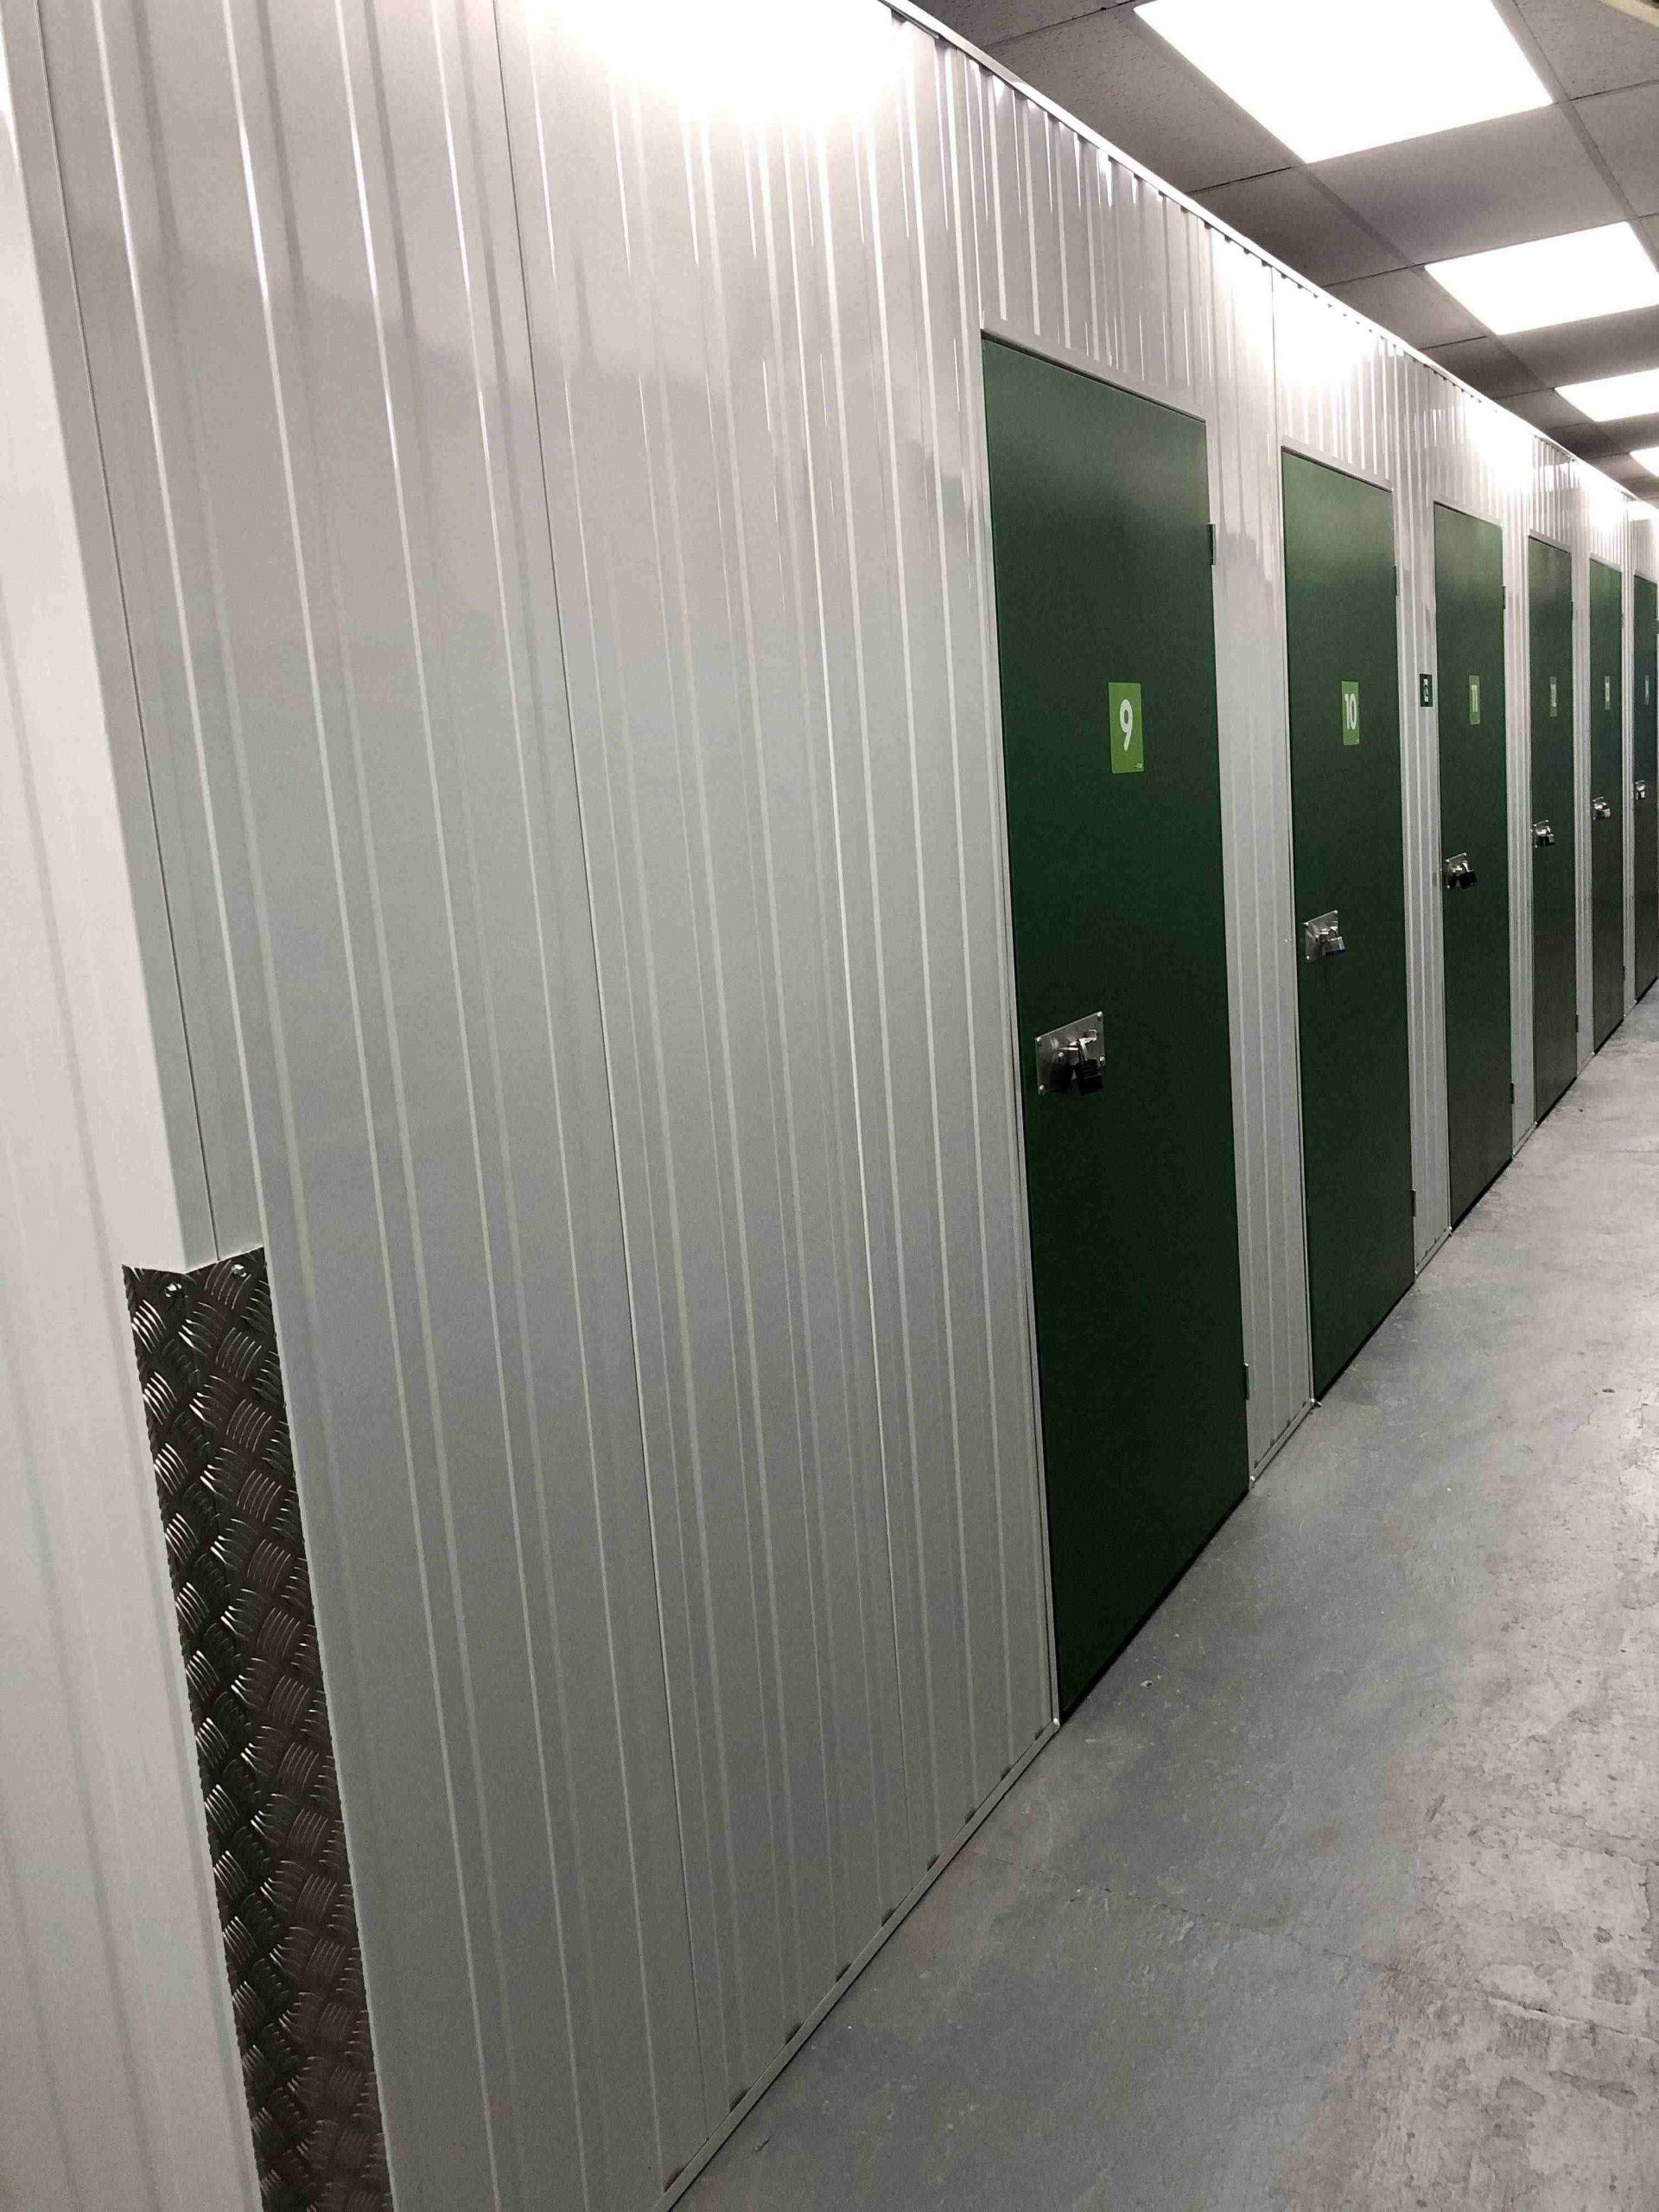 GoStore Foolow a storage company in Foolow, Derbyshire, S32 5qb, Hope Valley, UK